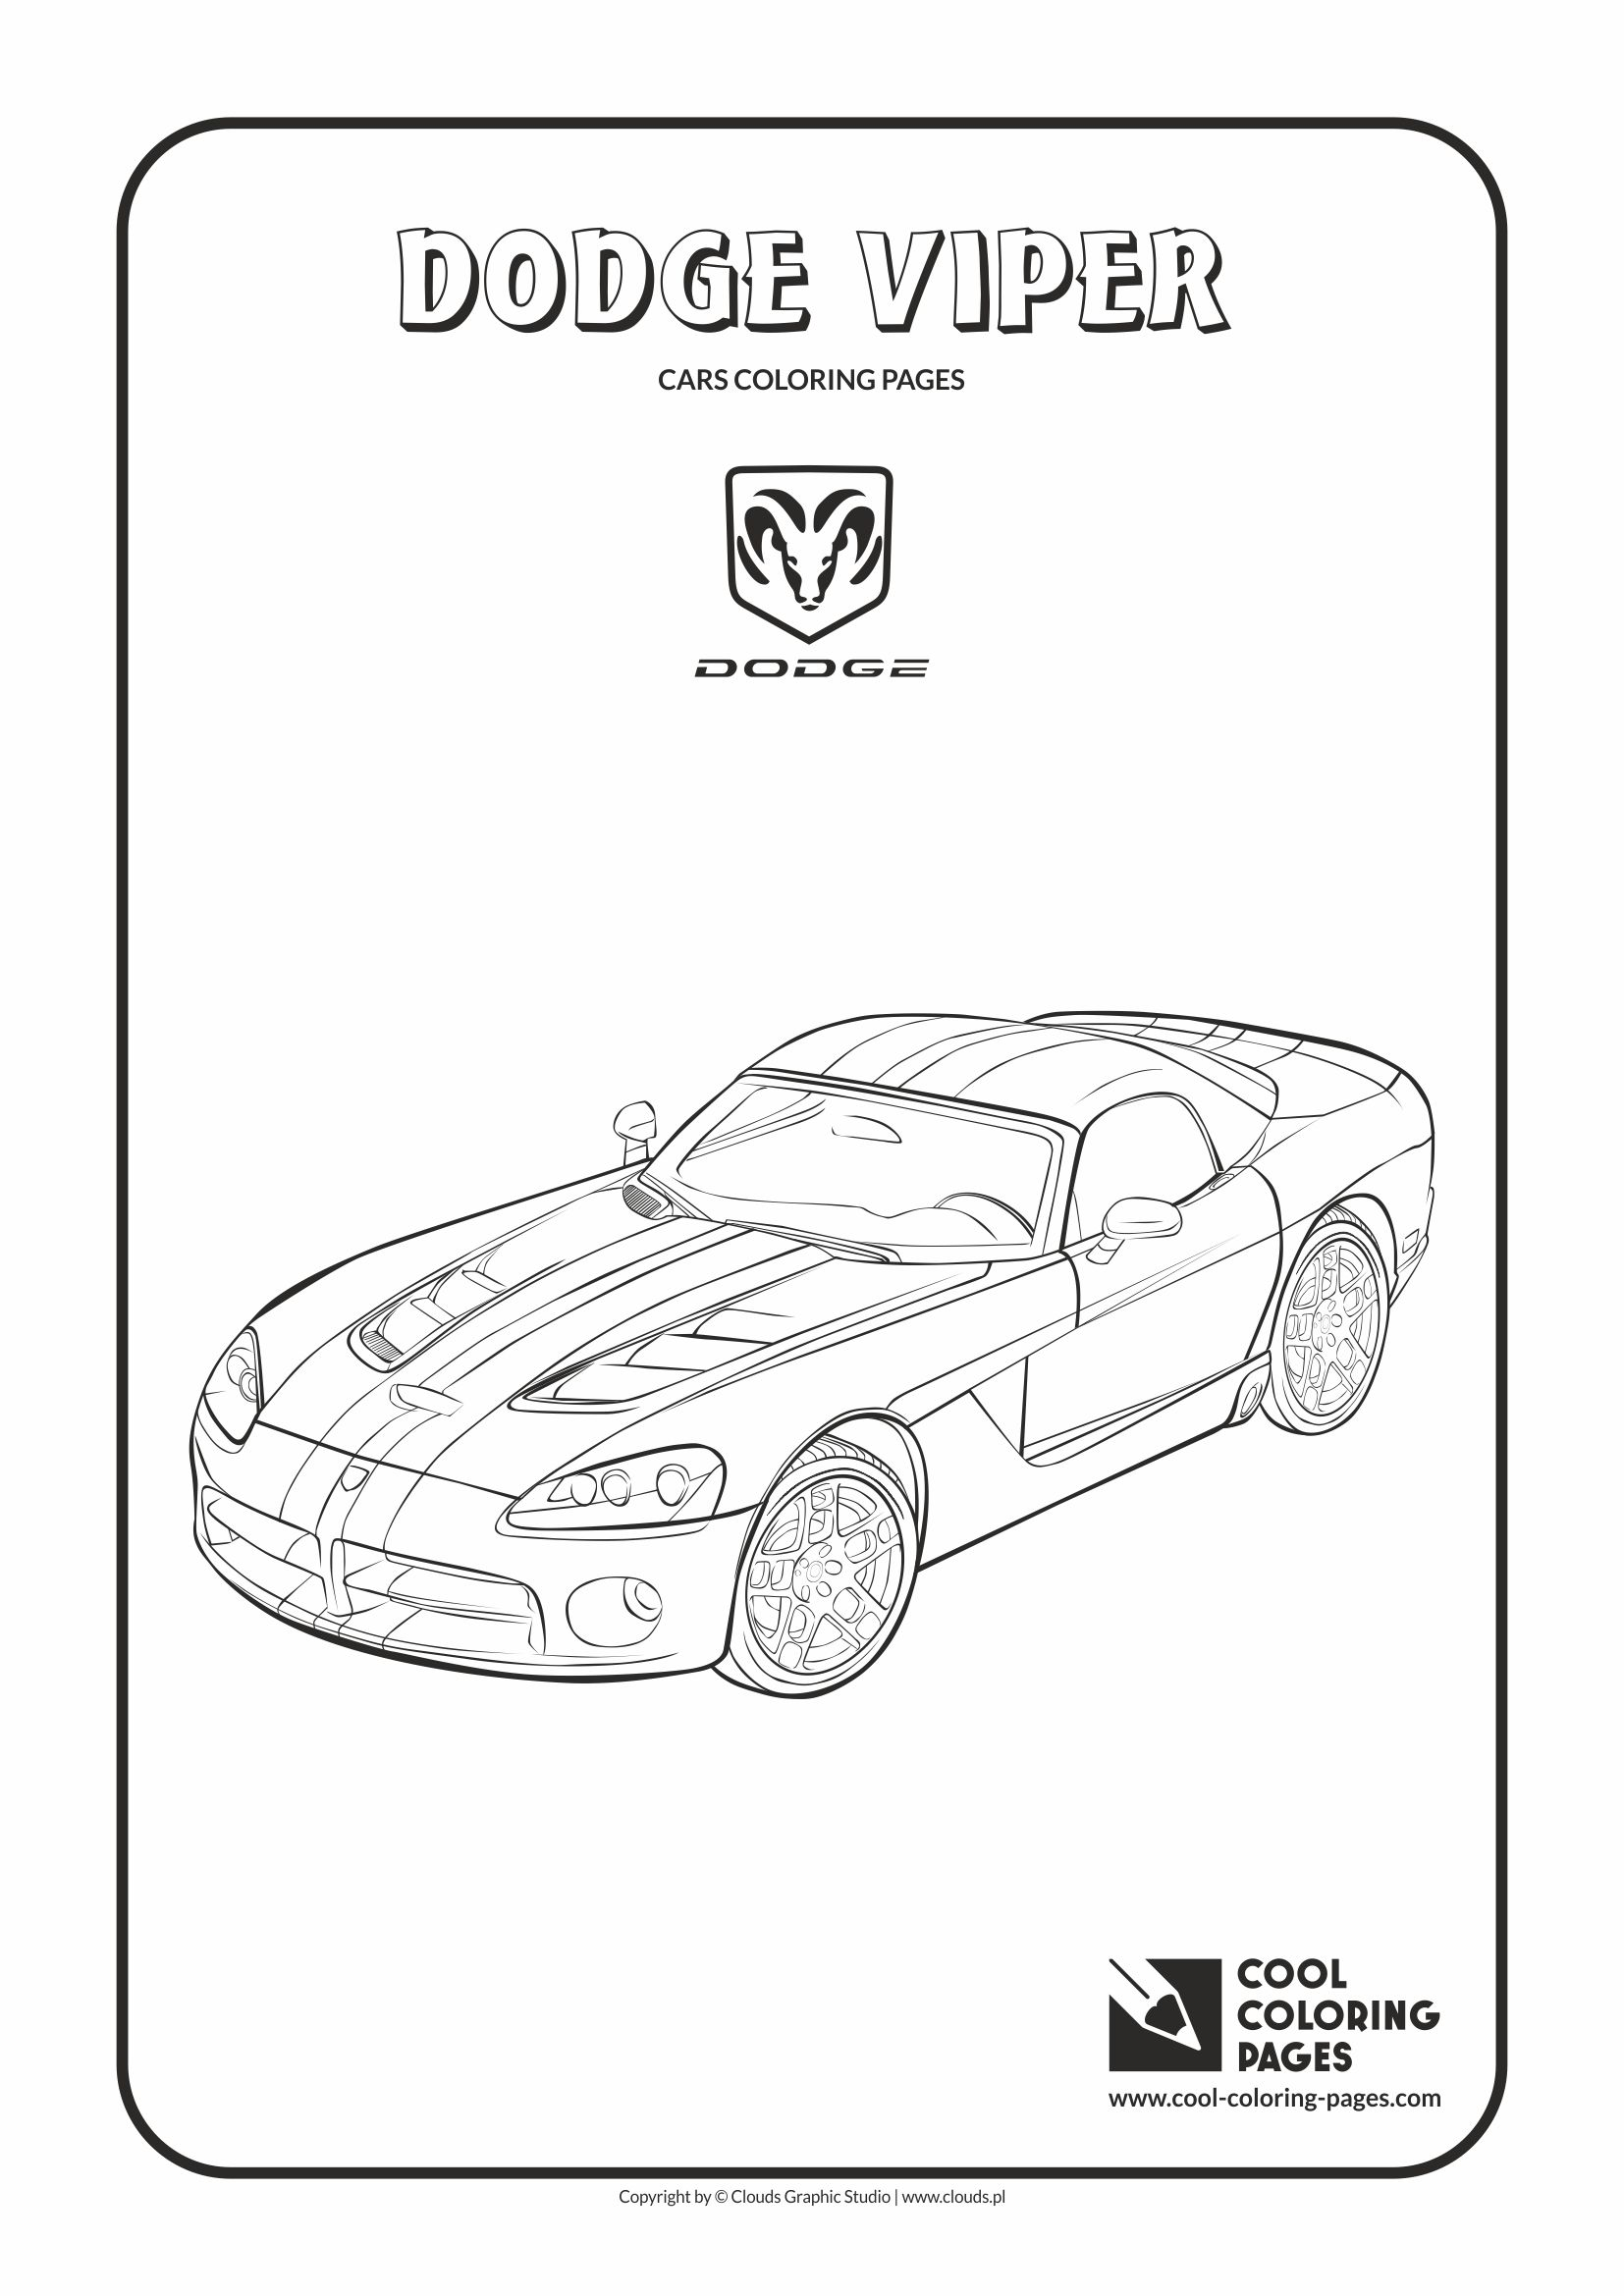 Subaru Impreza Wrx Sti Coloring Pages